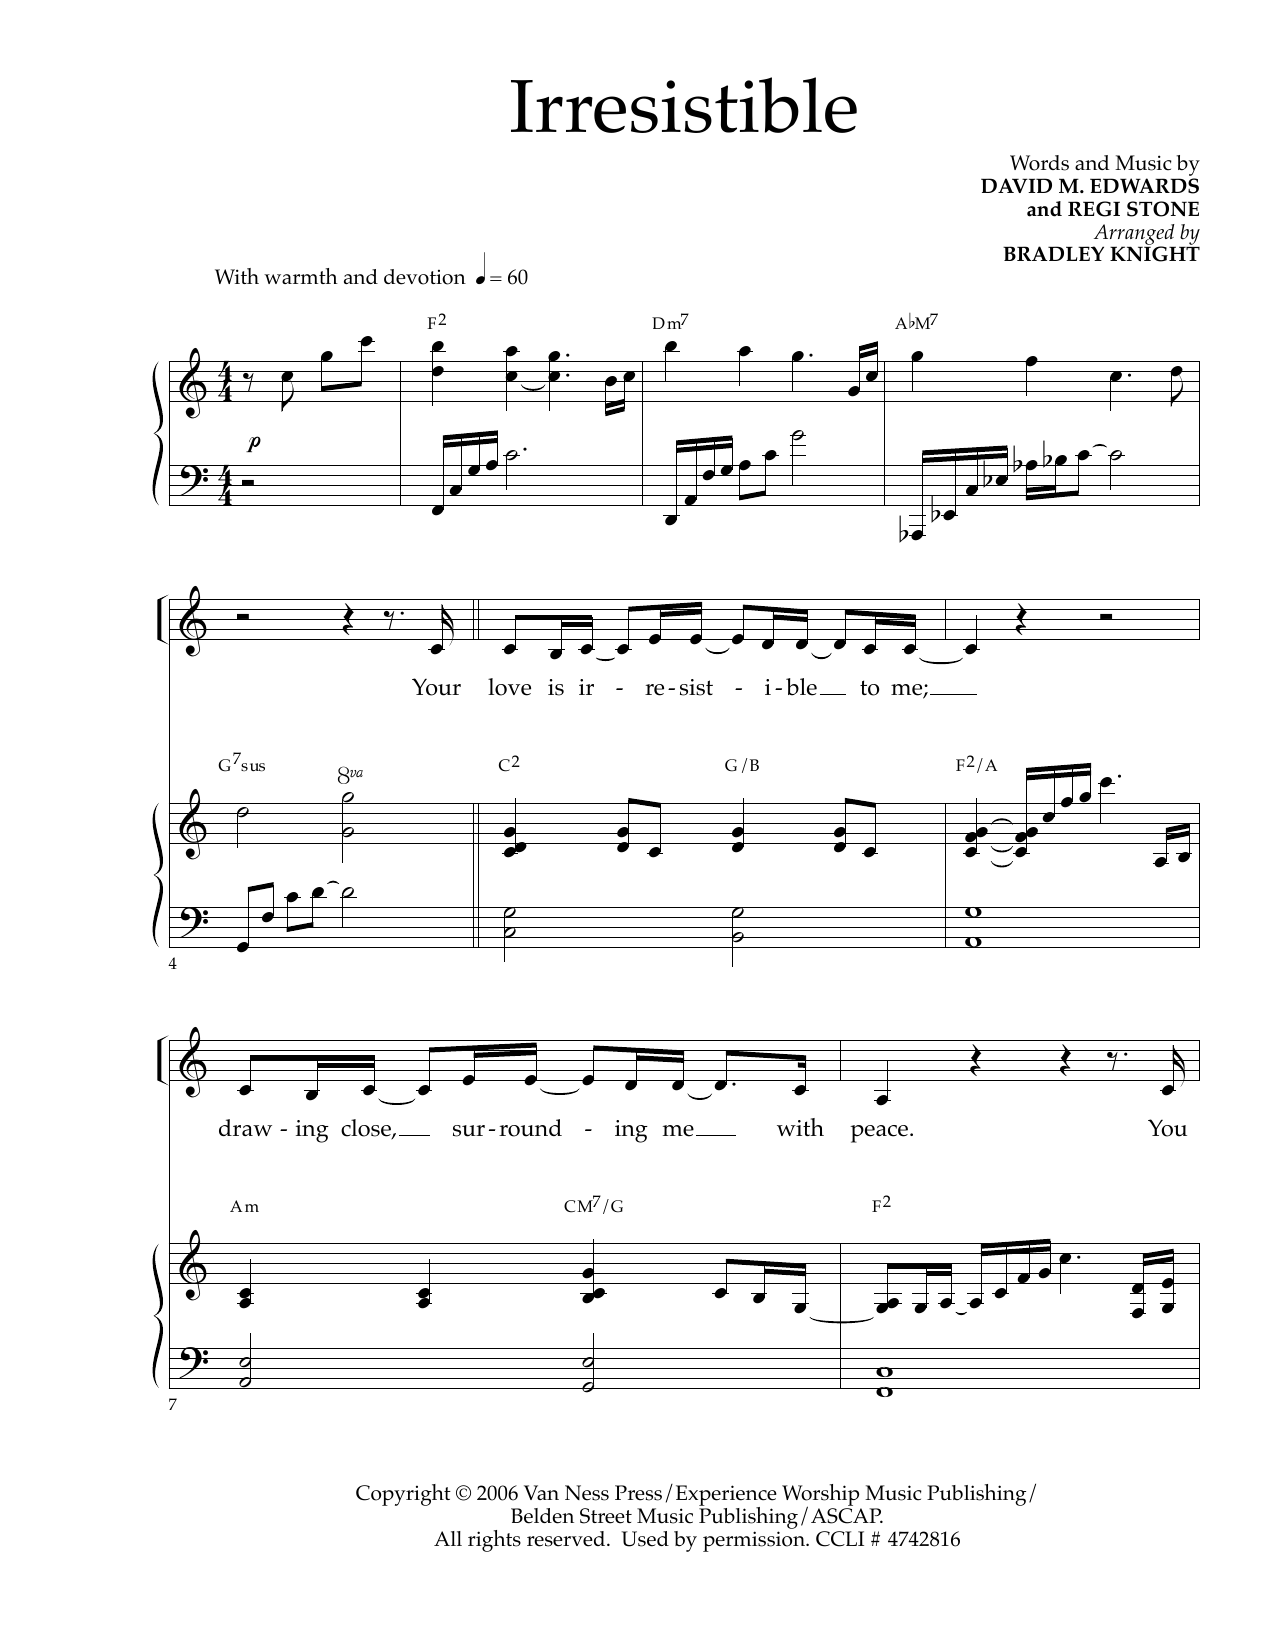 David M. Edwards and Regi Stone Irresistible (arr. Bradley Knight) sheet music notes and chords. Download Printable PDF.